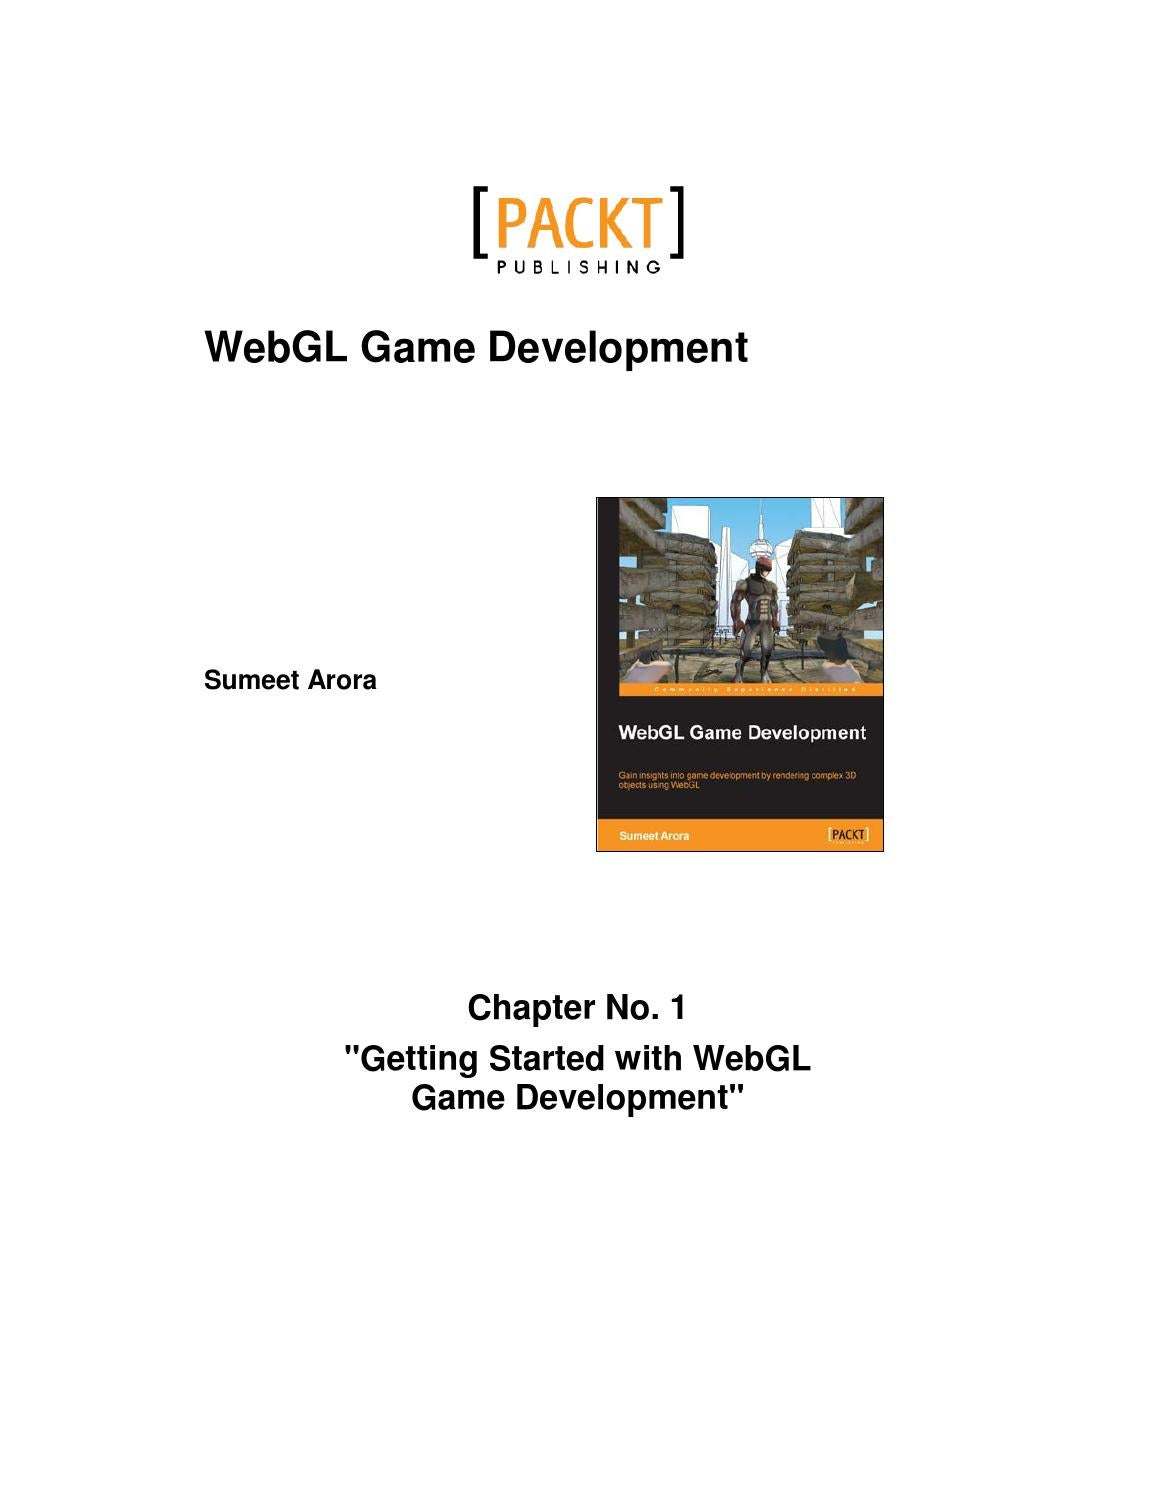 Getting started with webgl game development chapter 01 by